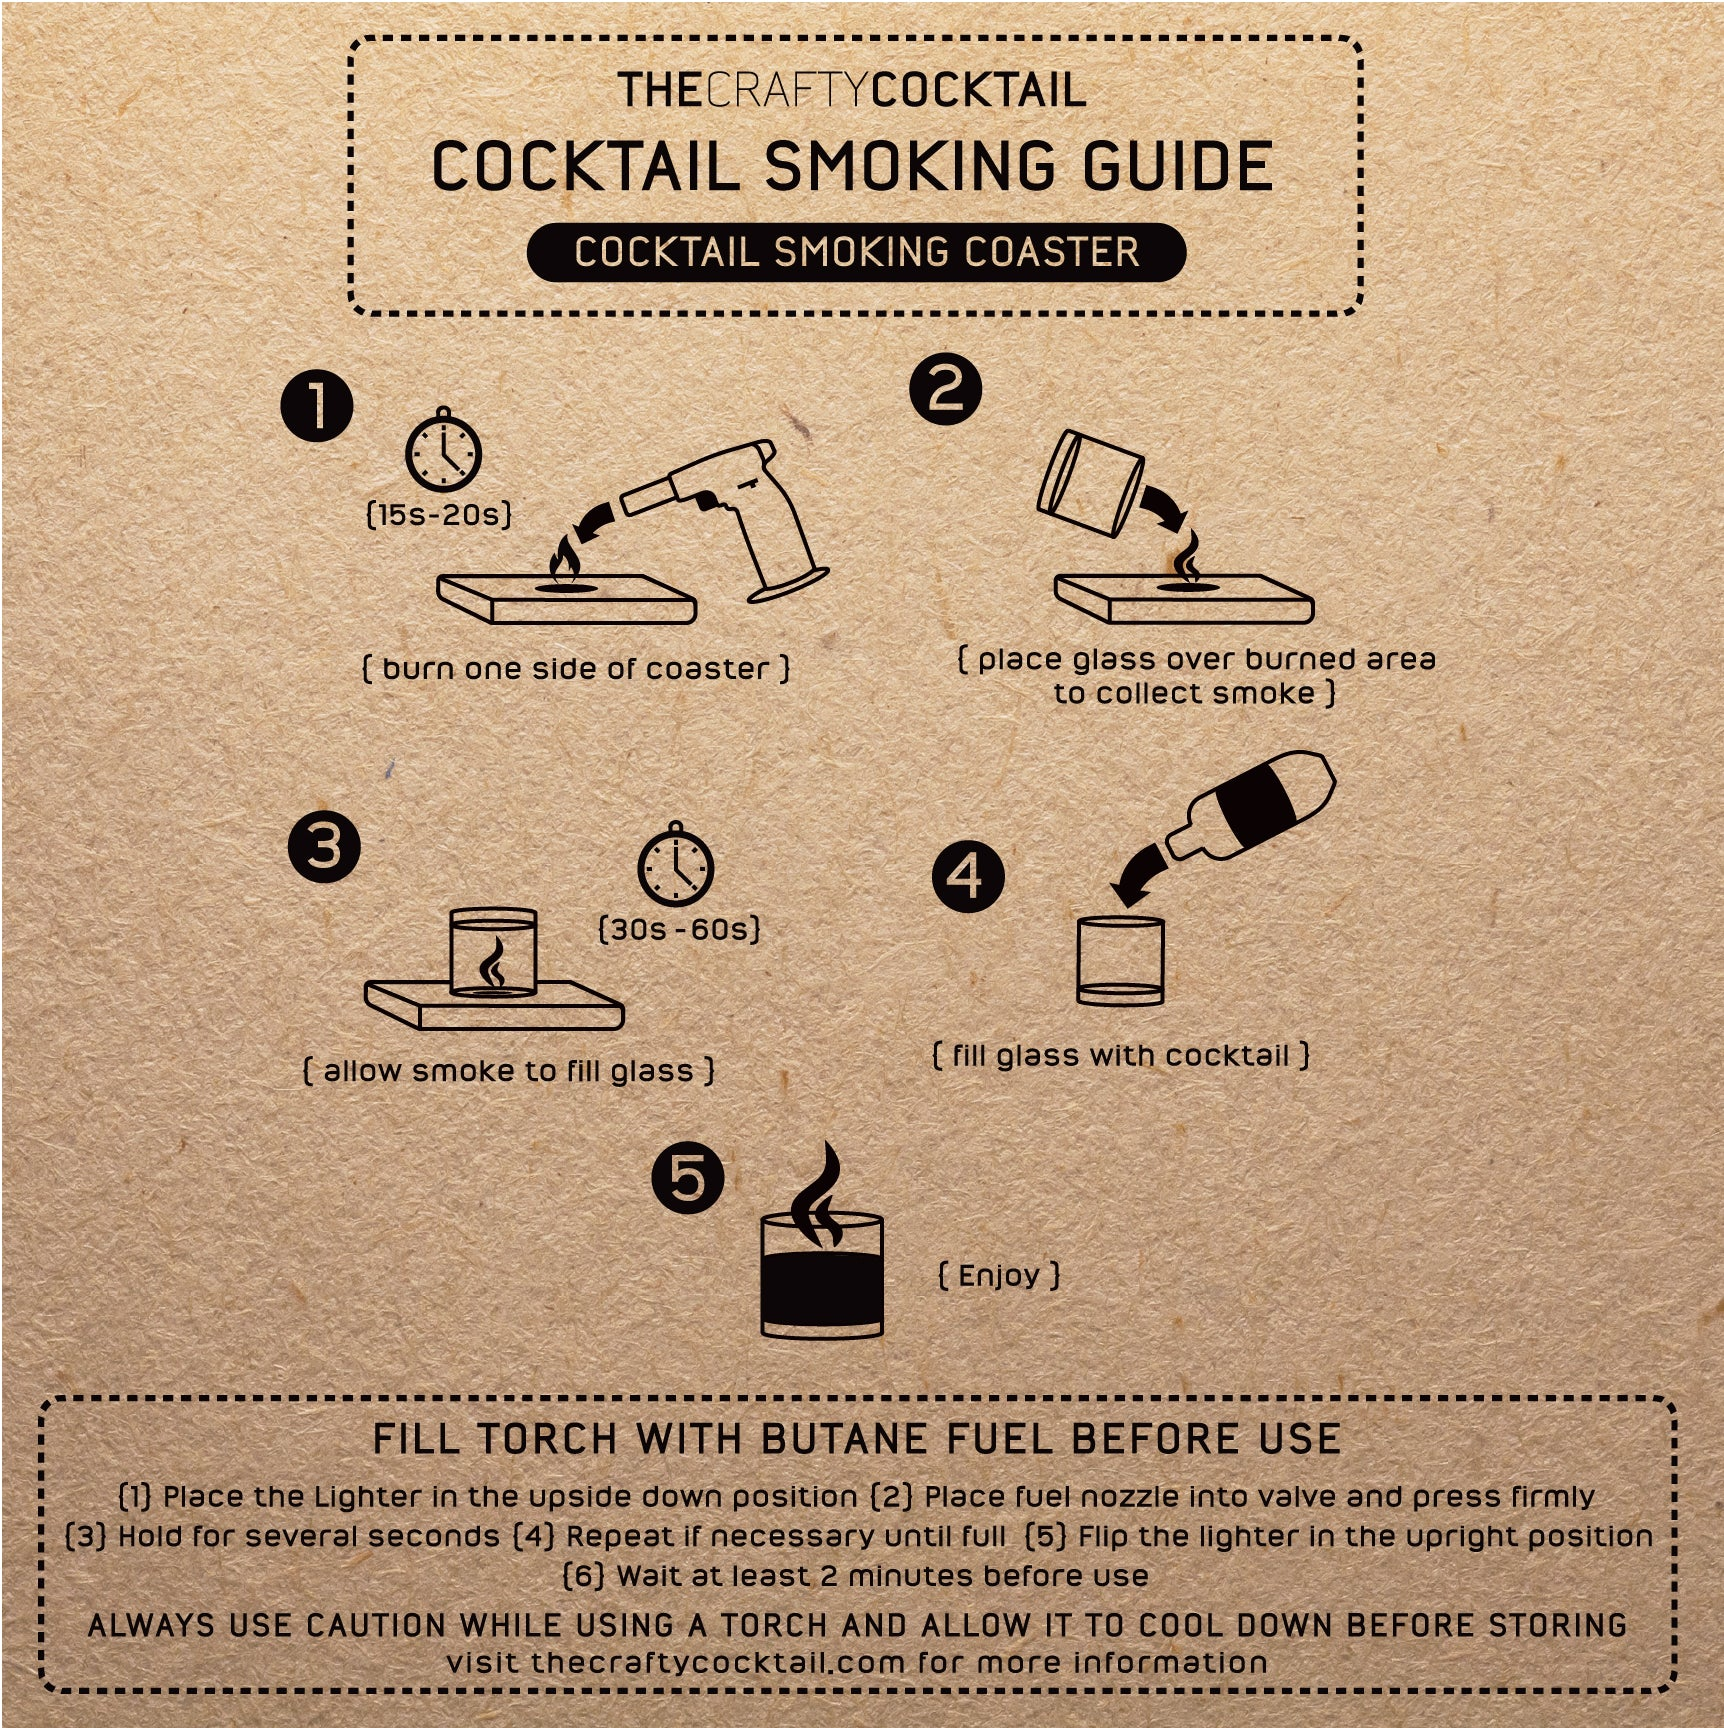 How to smoke a cocktail